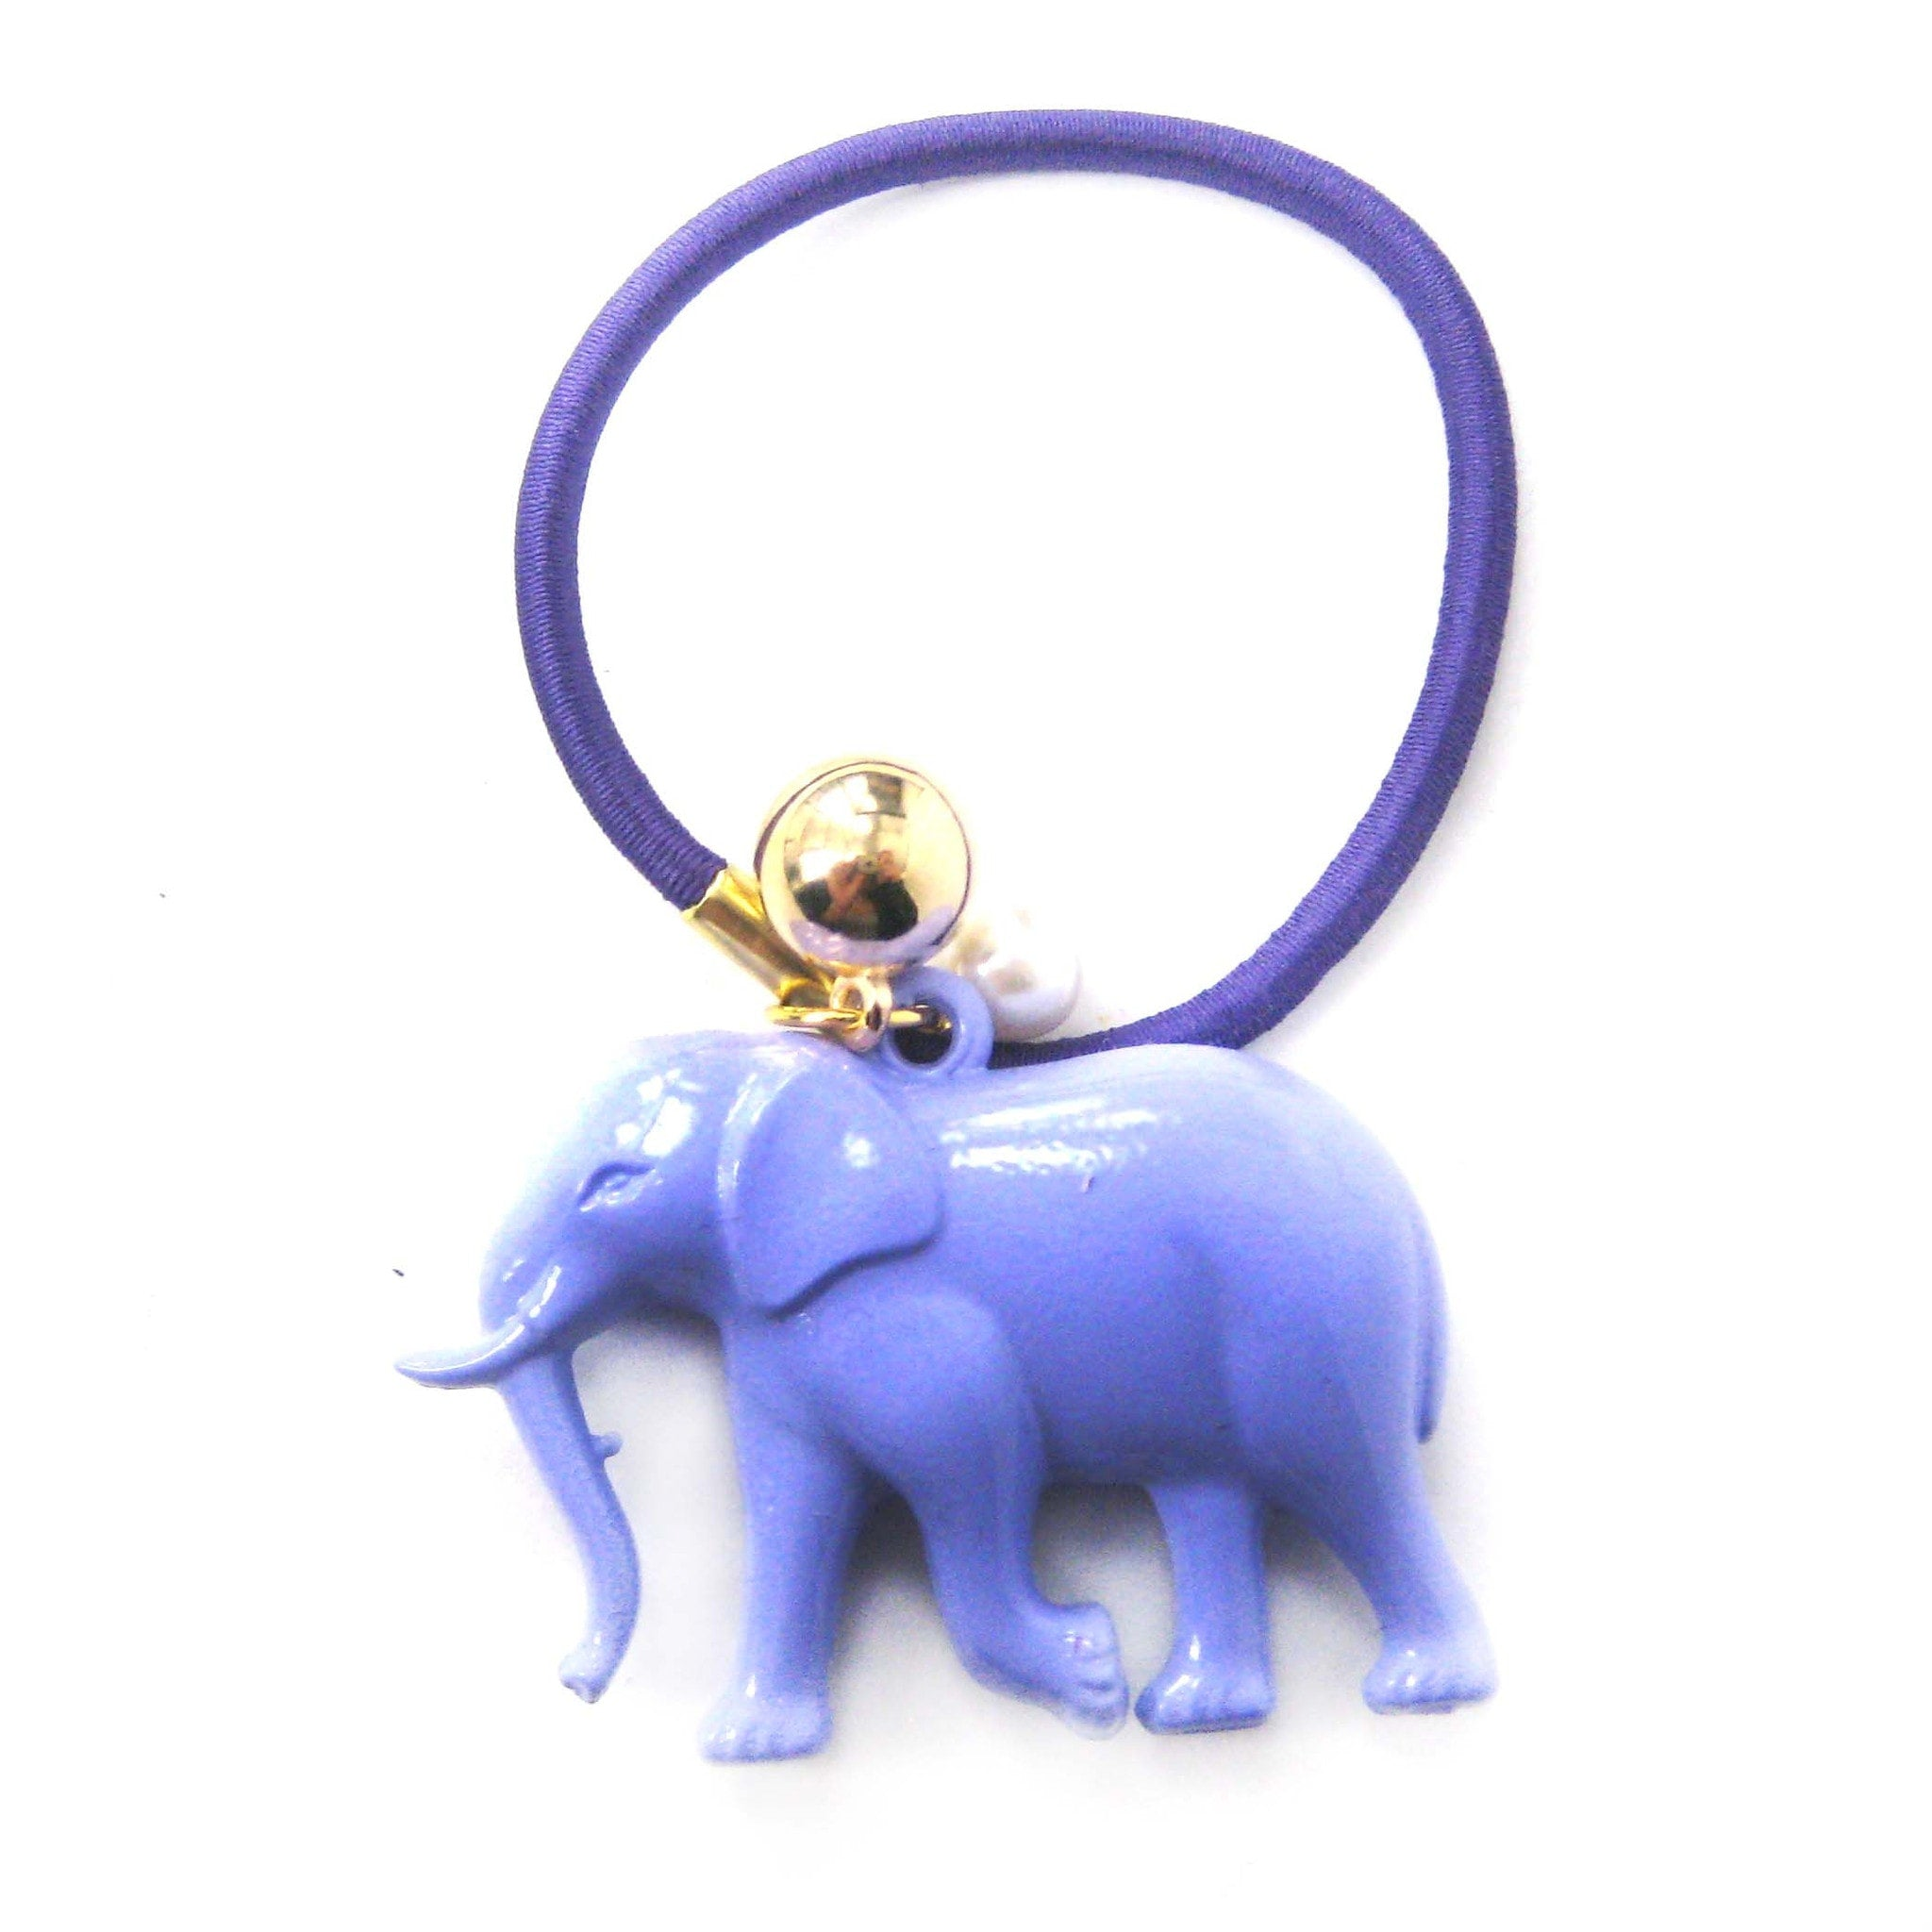 Large Elephant Pendant Hair Tie Pony Tail Holder in Purple | DOTOLY